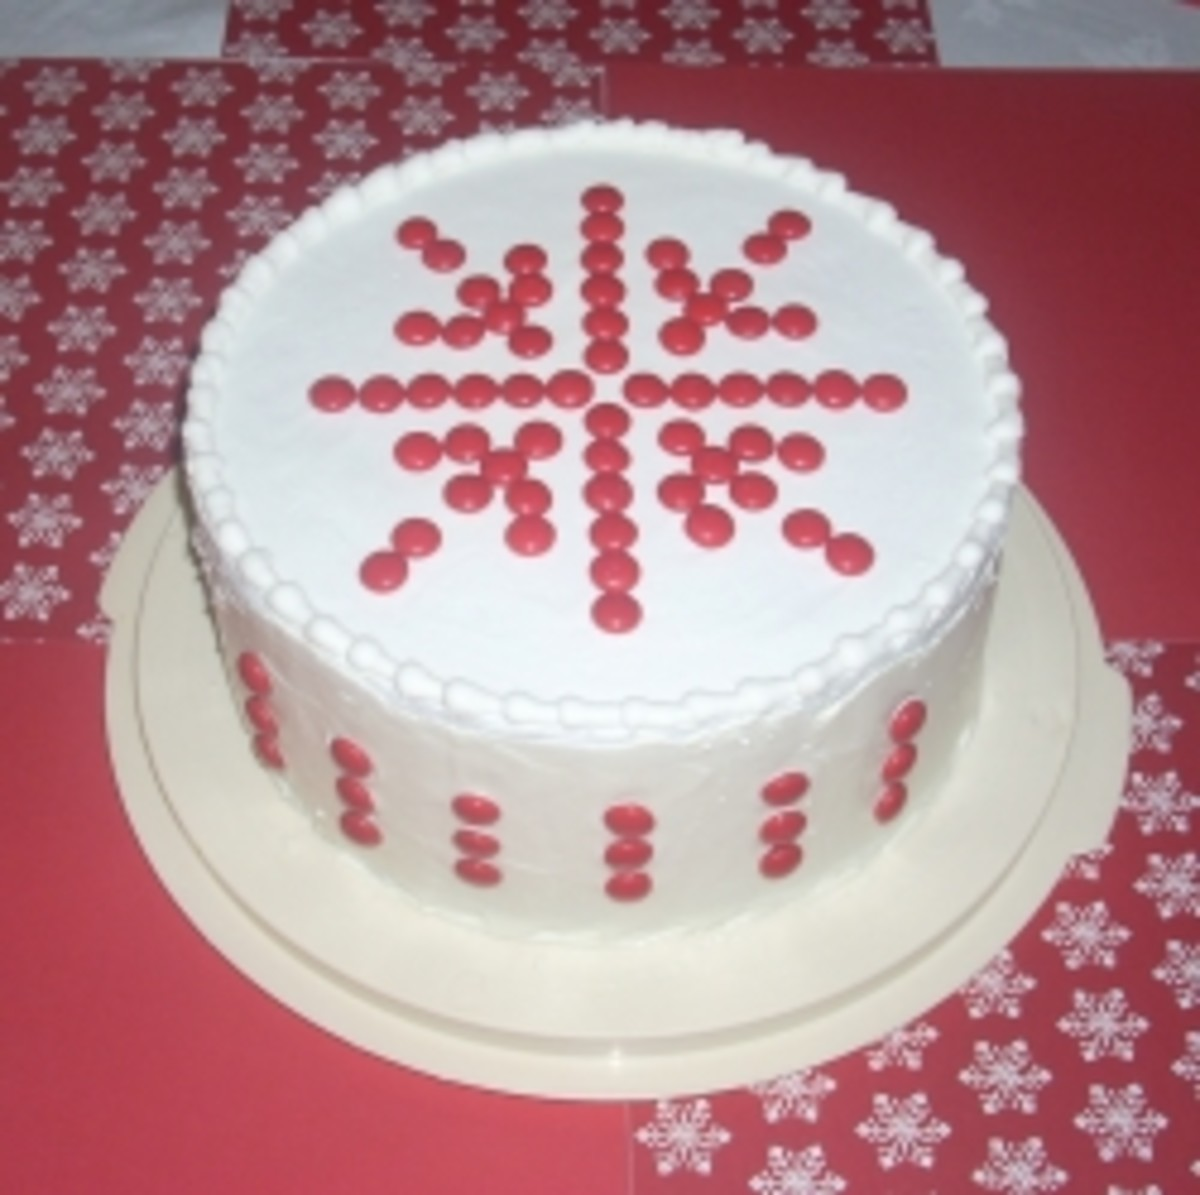 Snowflake Cake made with Red M&M candies M&M's